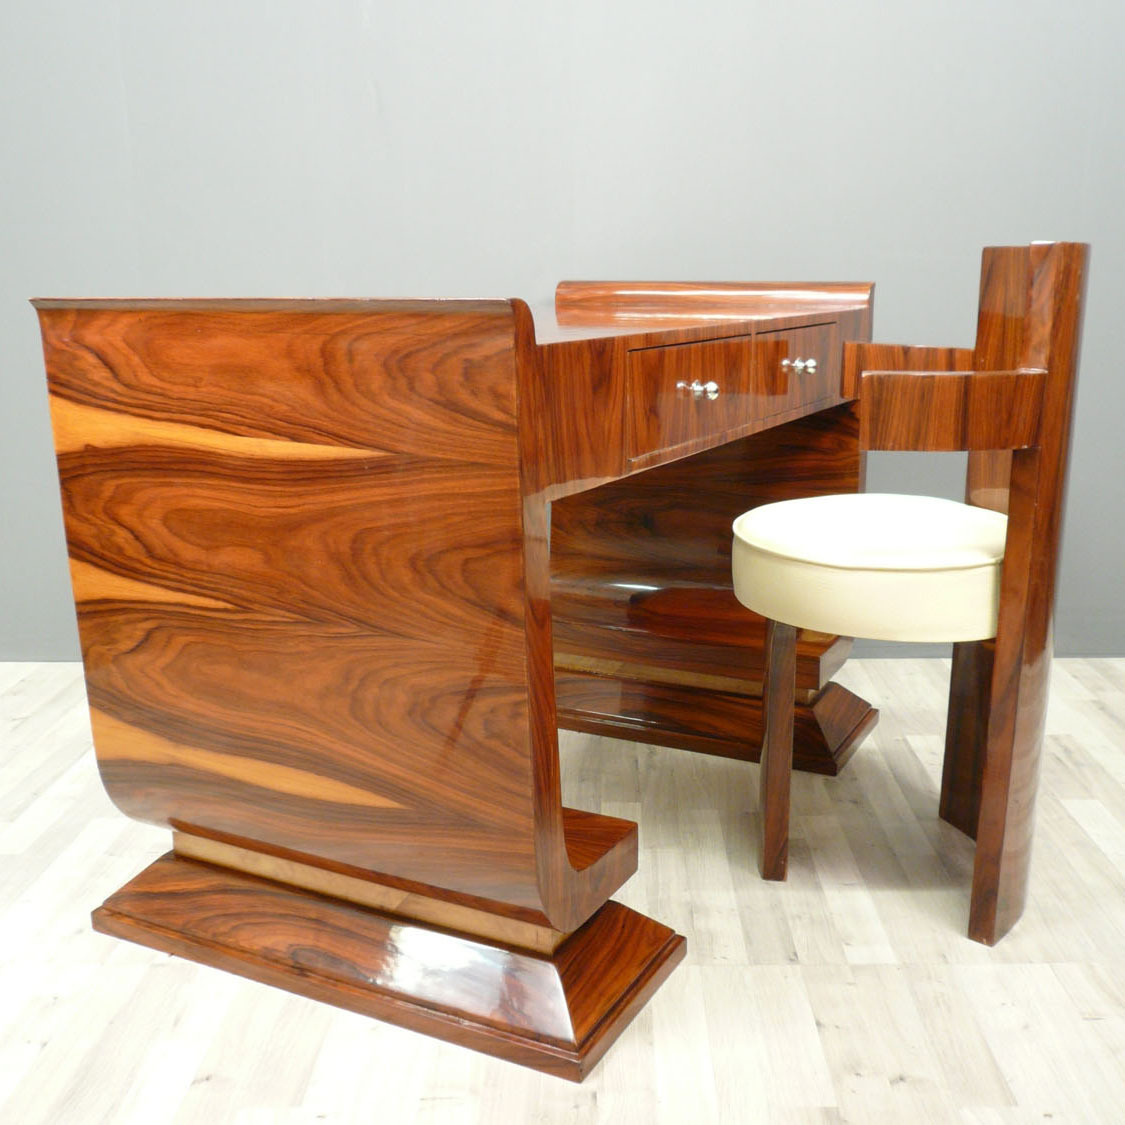 Style art d co mobilier for Meuble art deco belgique